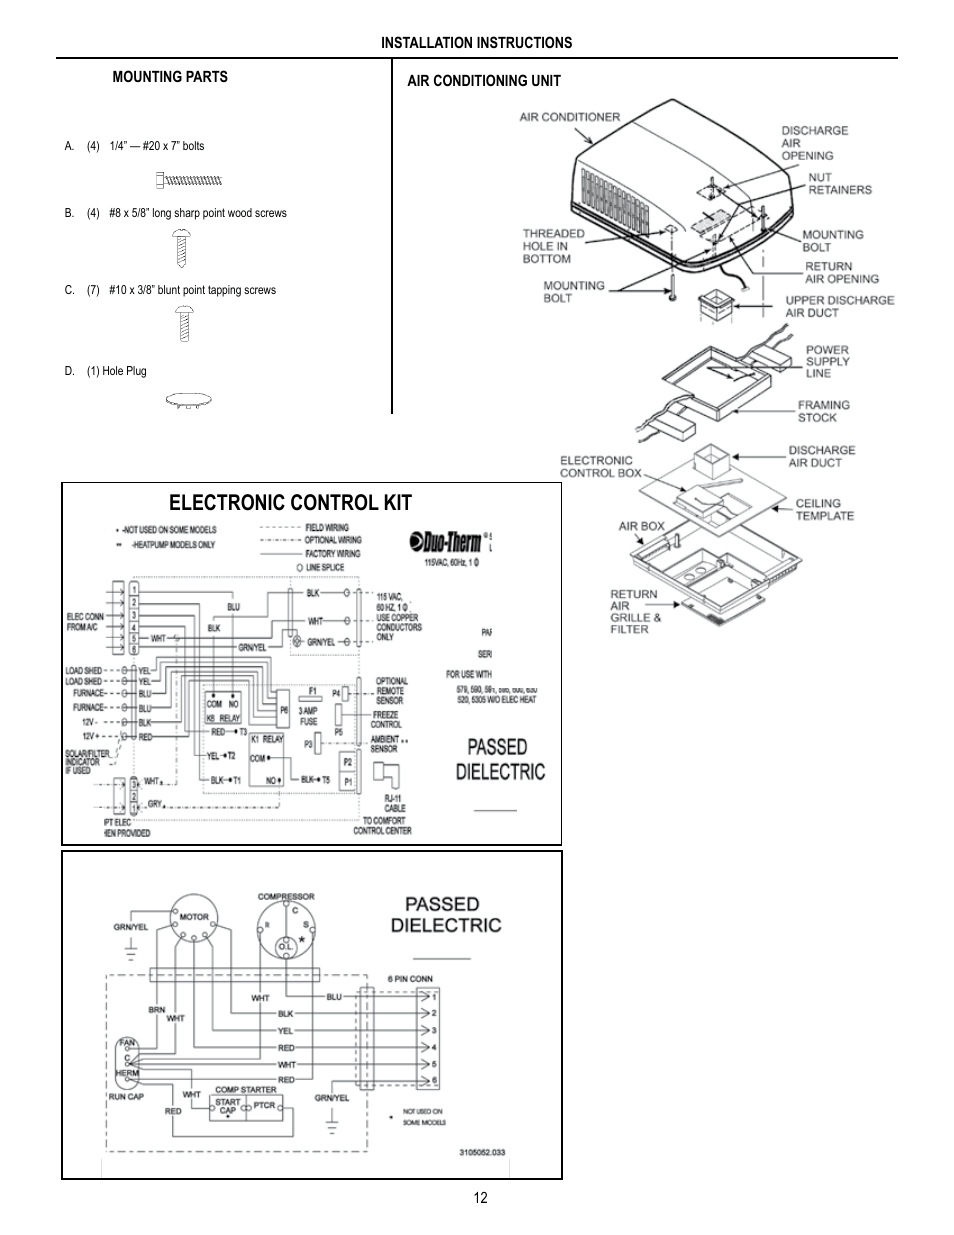 hight resolution of electronic control kit unit field wiring diagram dometic brisk air 590 series user manual page 12 12